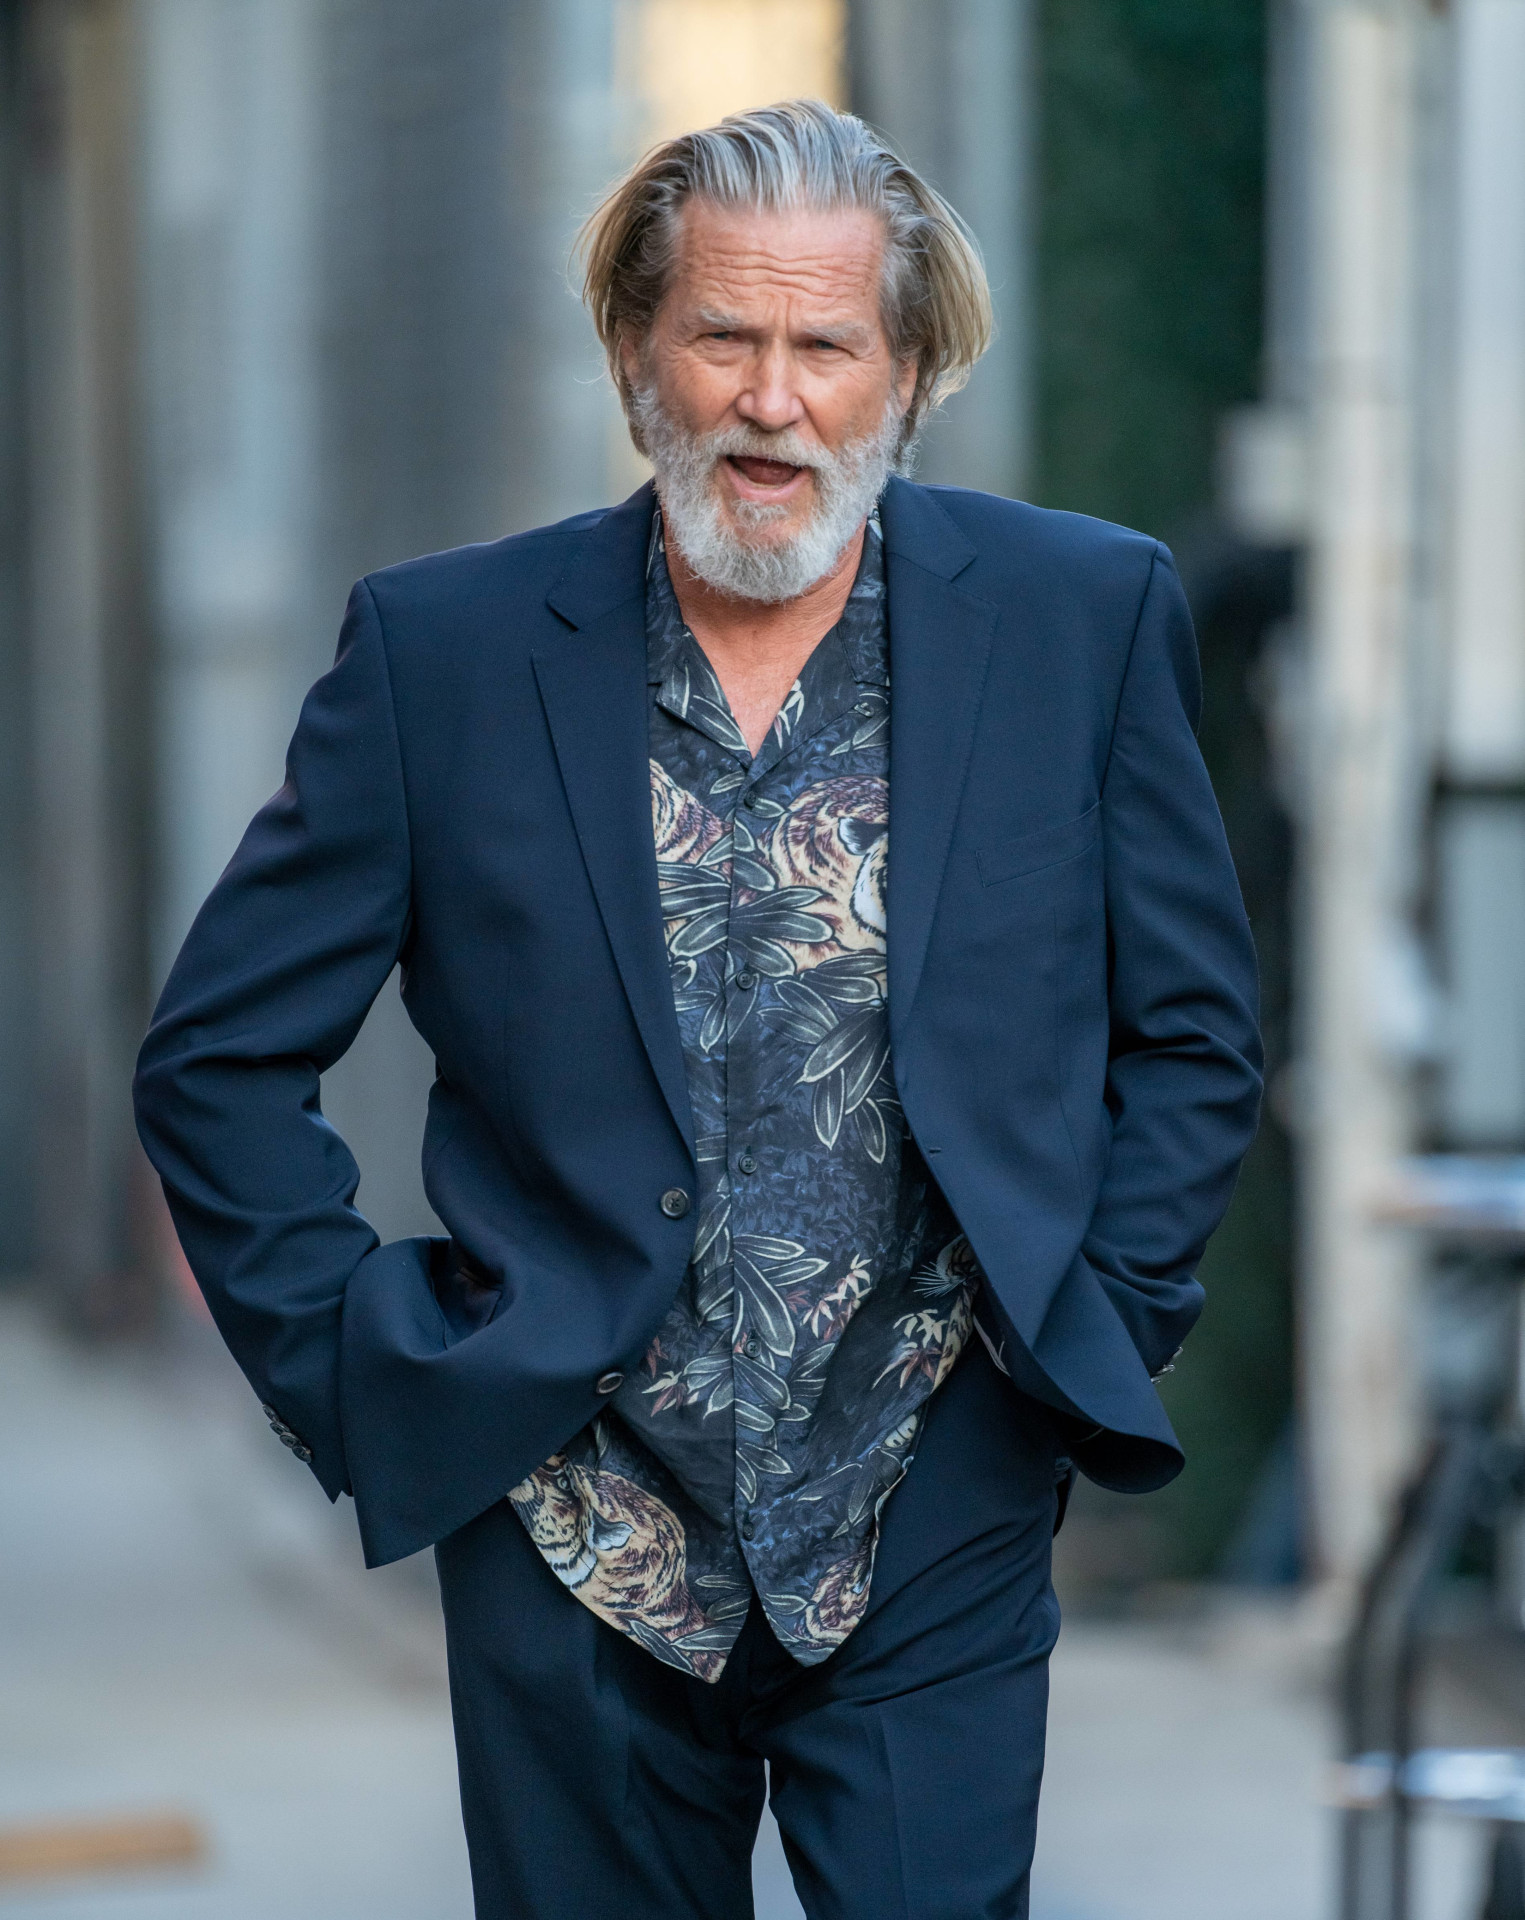 Jeff Bridges na ulicy w Los Angeles, fot. Forum